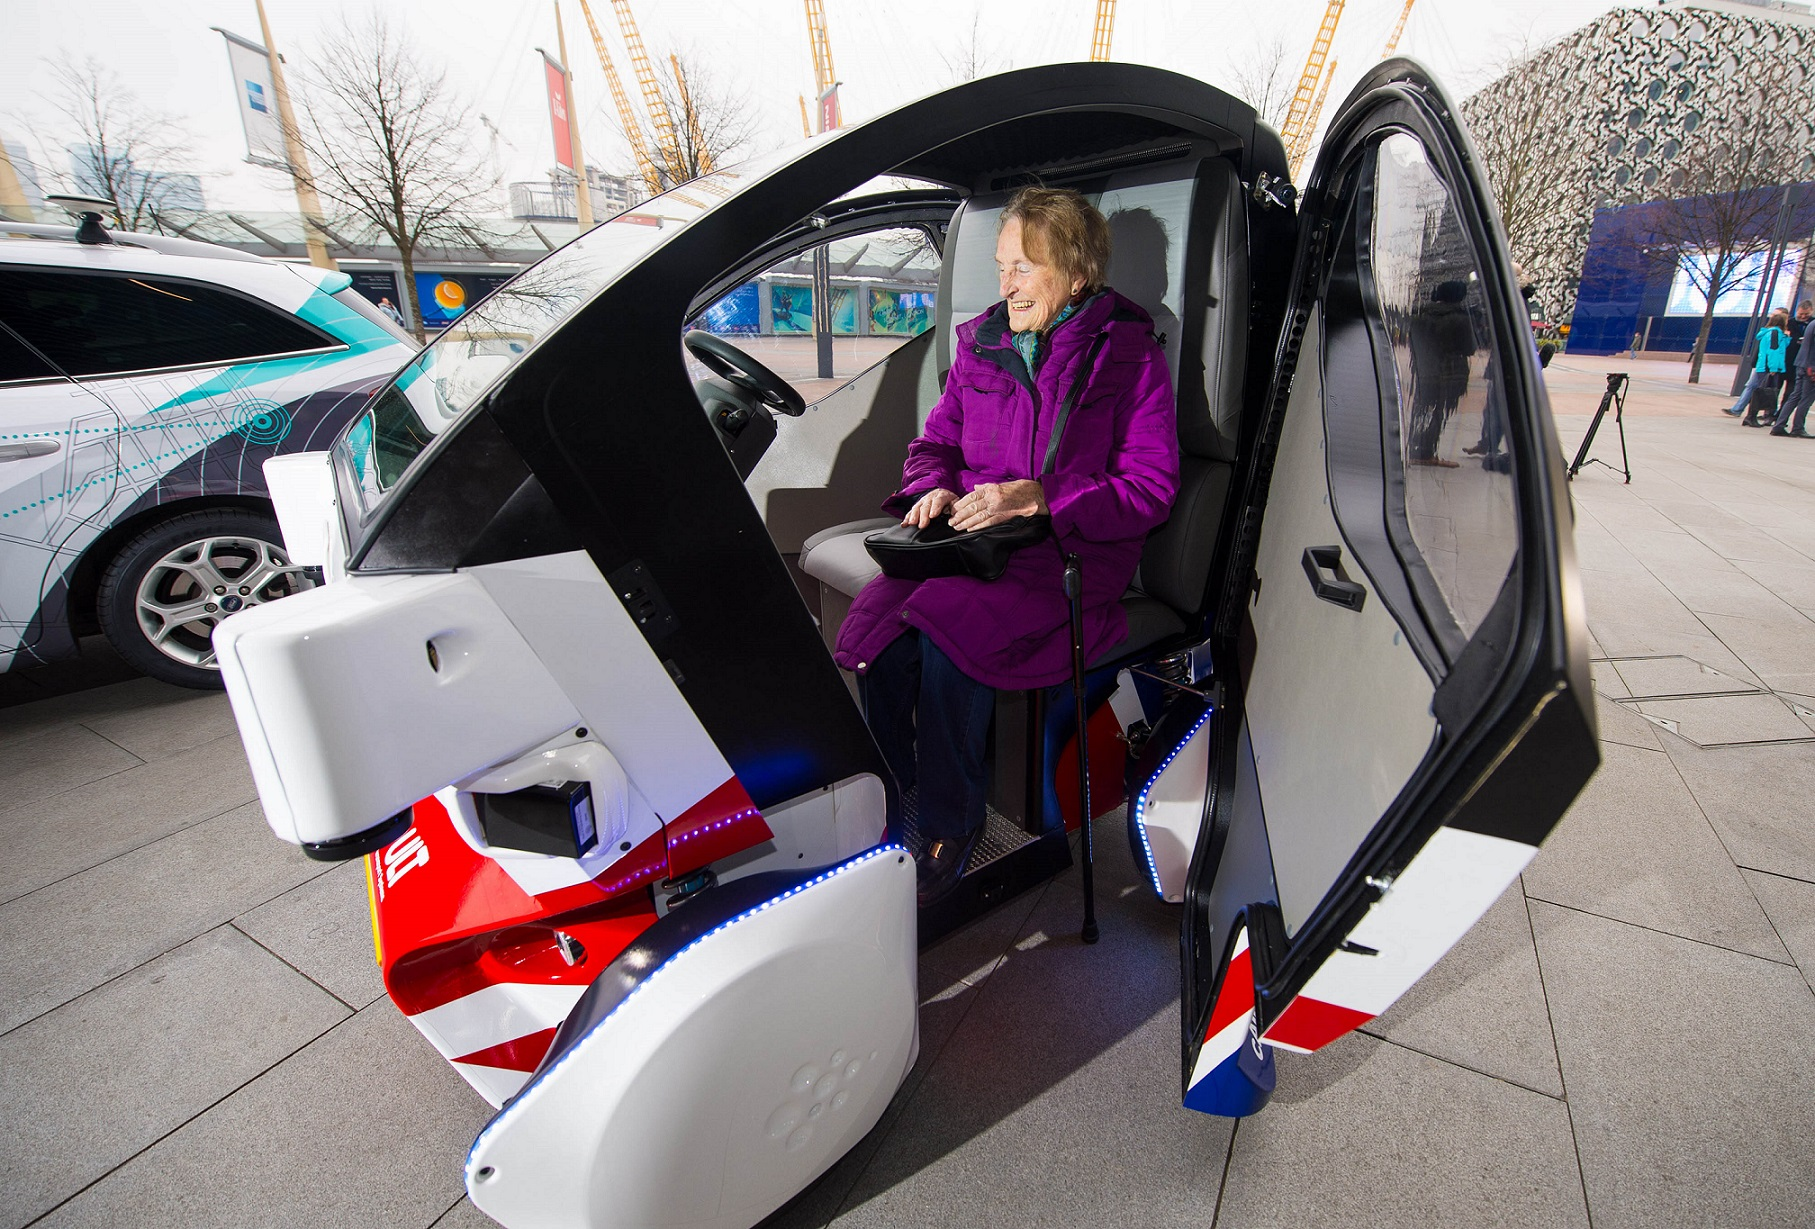 EDITORIAL USE ONLY Brenda Stevenson, 82, from Greenwich sits inside a prototype of the Pathfinder driverless pod, that will be the first autonomous vehicle in the UK to work on public footpaths, which has been unveiled today by the Transport Systems Catapult at a Government launch event in Greenwich, London. PRESS ASSOCIATION Photo. Picture date: Wednesday February 11, 2015. The electric-powered vehicles can seat two people and are designed to work on pavements and pedestrianised areas. They are being built by RDM Group; one of the UKÕs fastest growing advanced engineering companies, and will be equipped with sensor and navigation technology provided by the University of Oxford's Mobile Robotics Group. Photo credit should: Dominic Lipinski/PA Wire